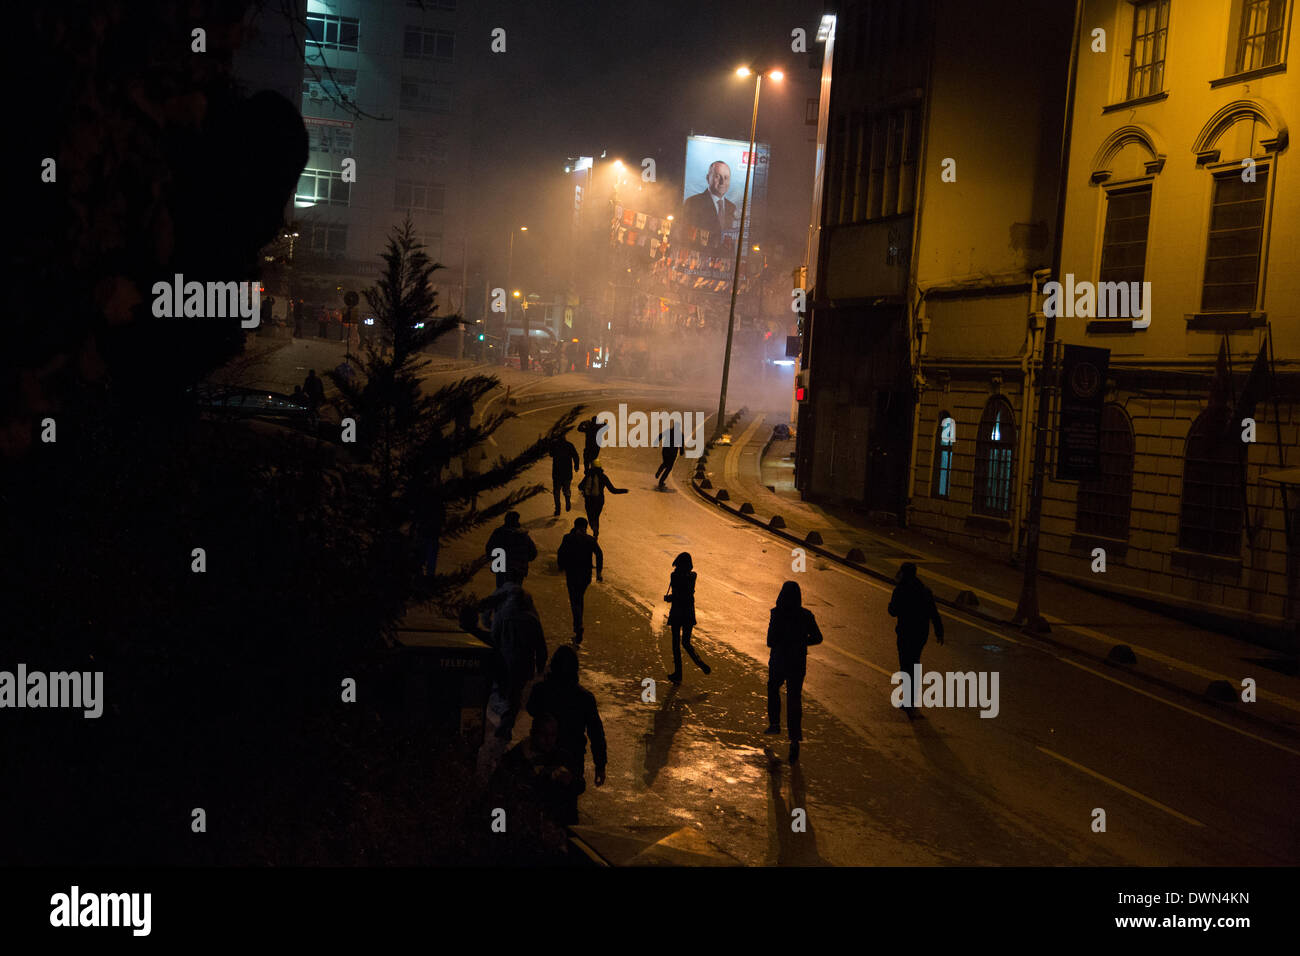 Nationwide protests lead to clashes between civilian protesters and the police in Kadikoy, Istanbul - Stock Image